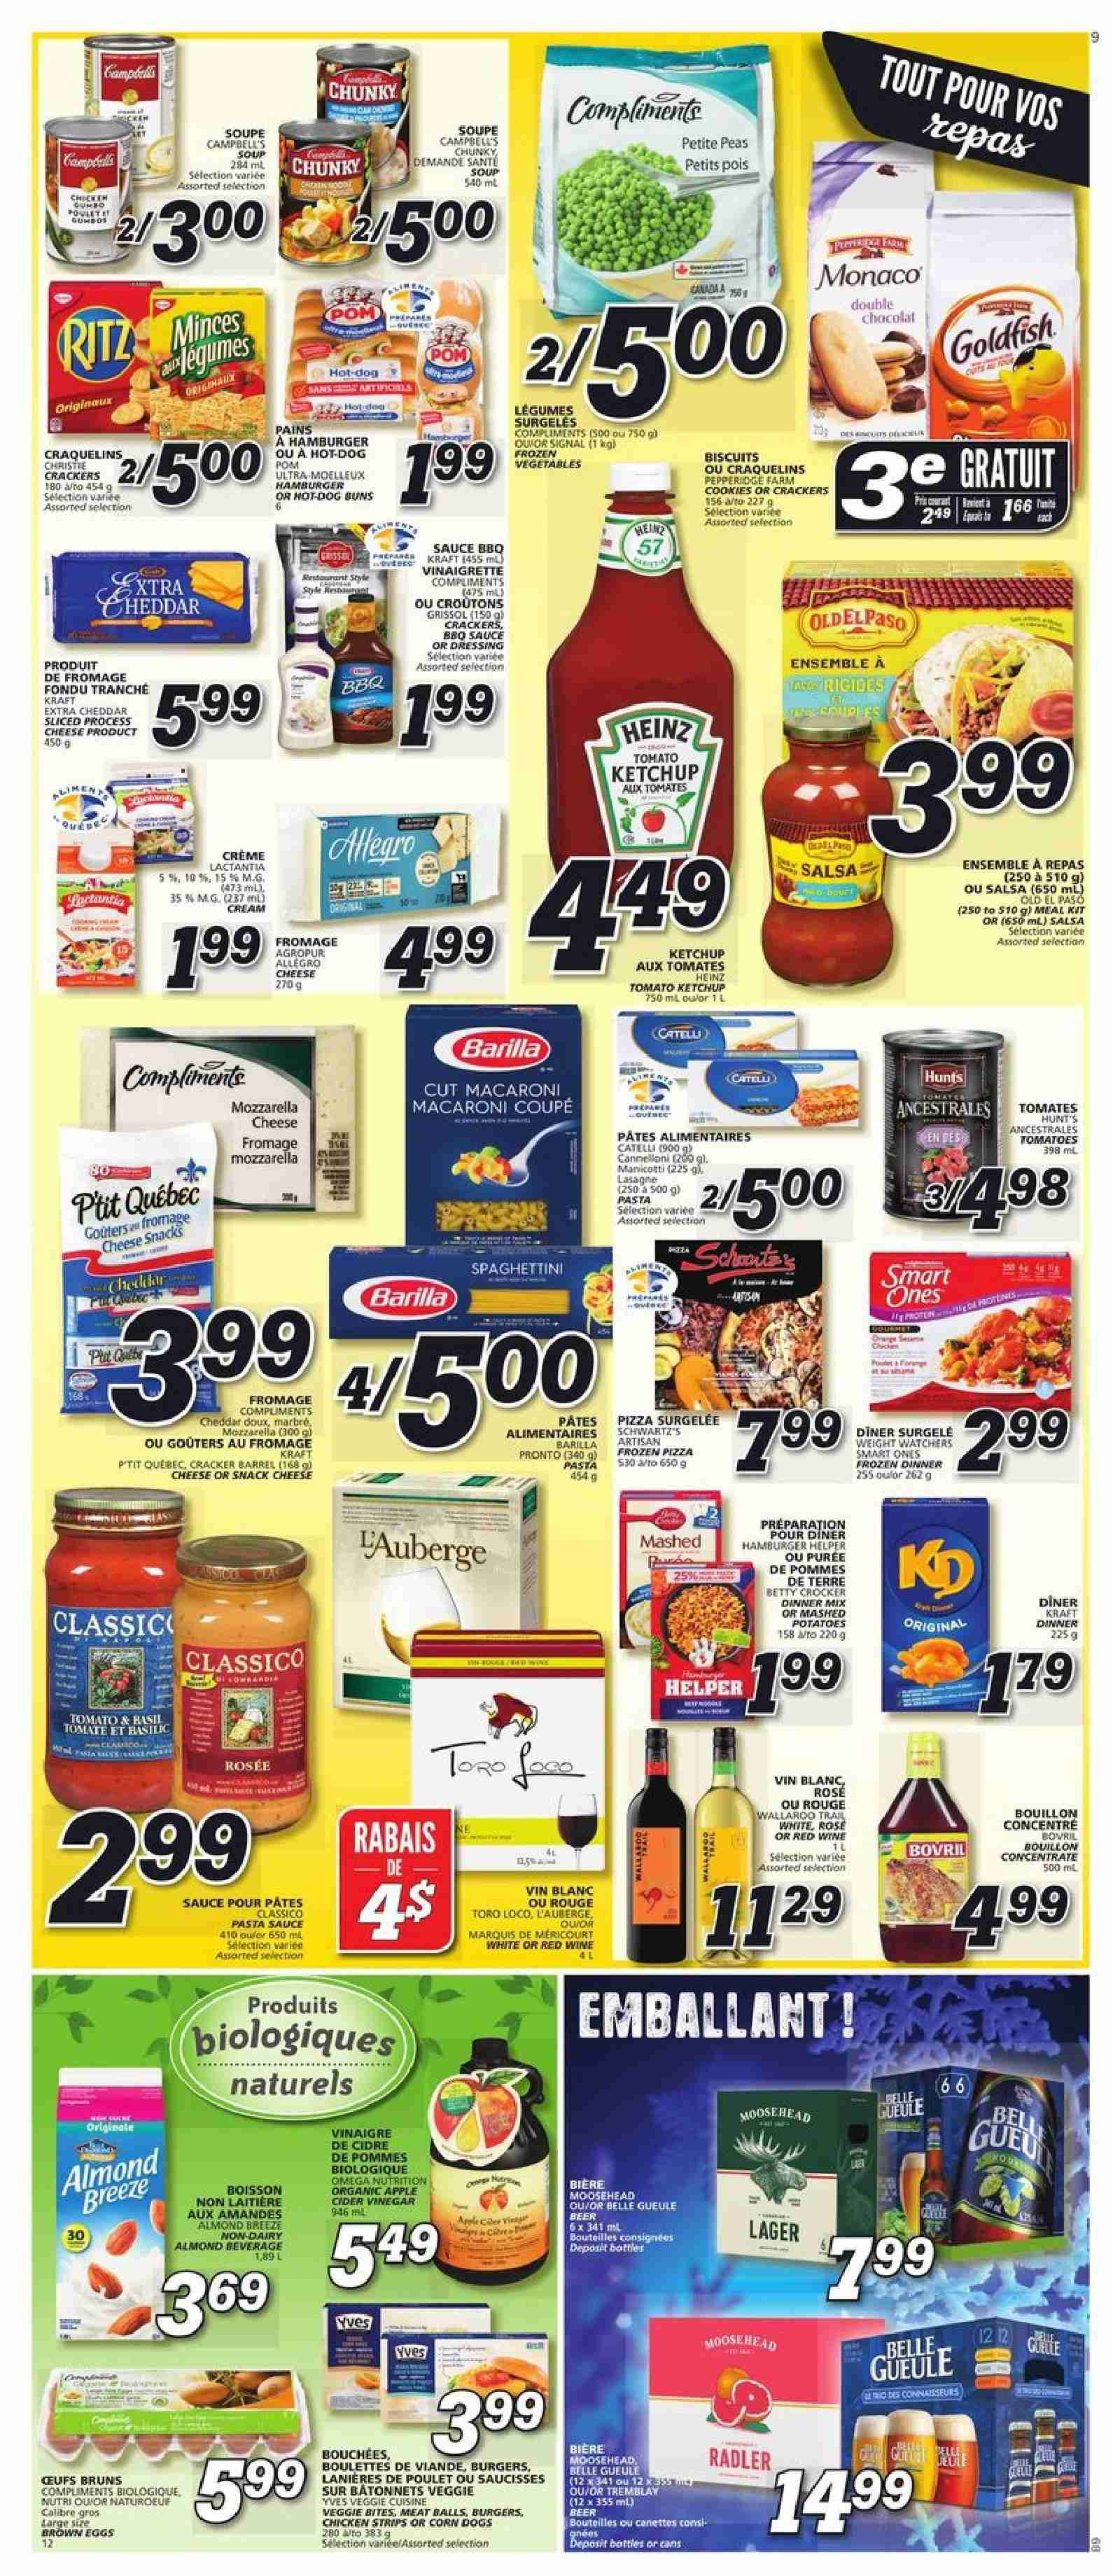 IGA Flyer  - January 10, 2019 - January 16, 2019. Page 7.